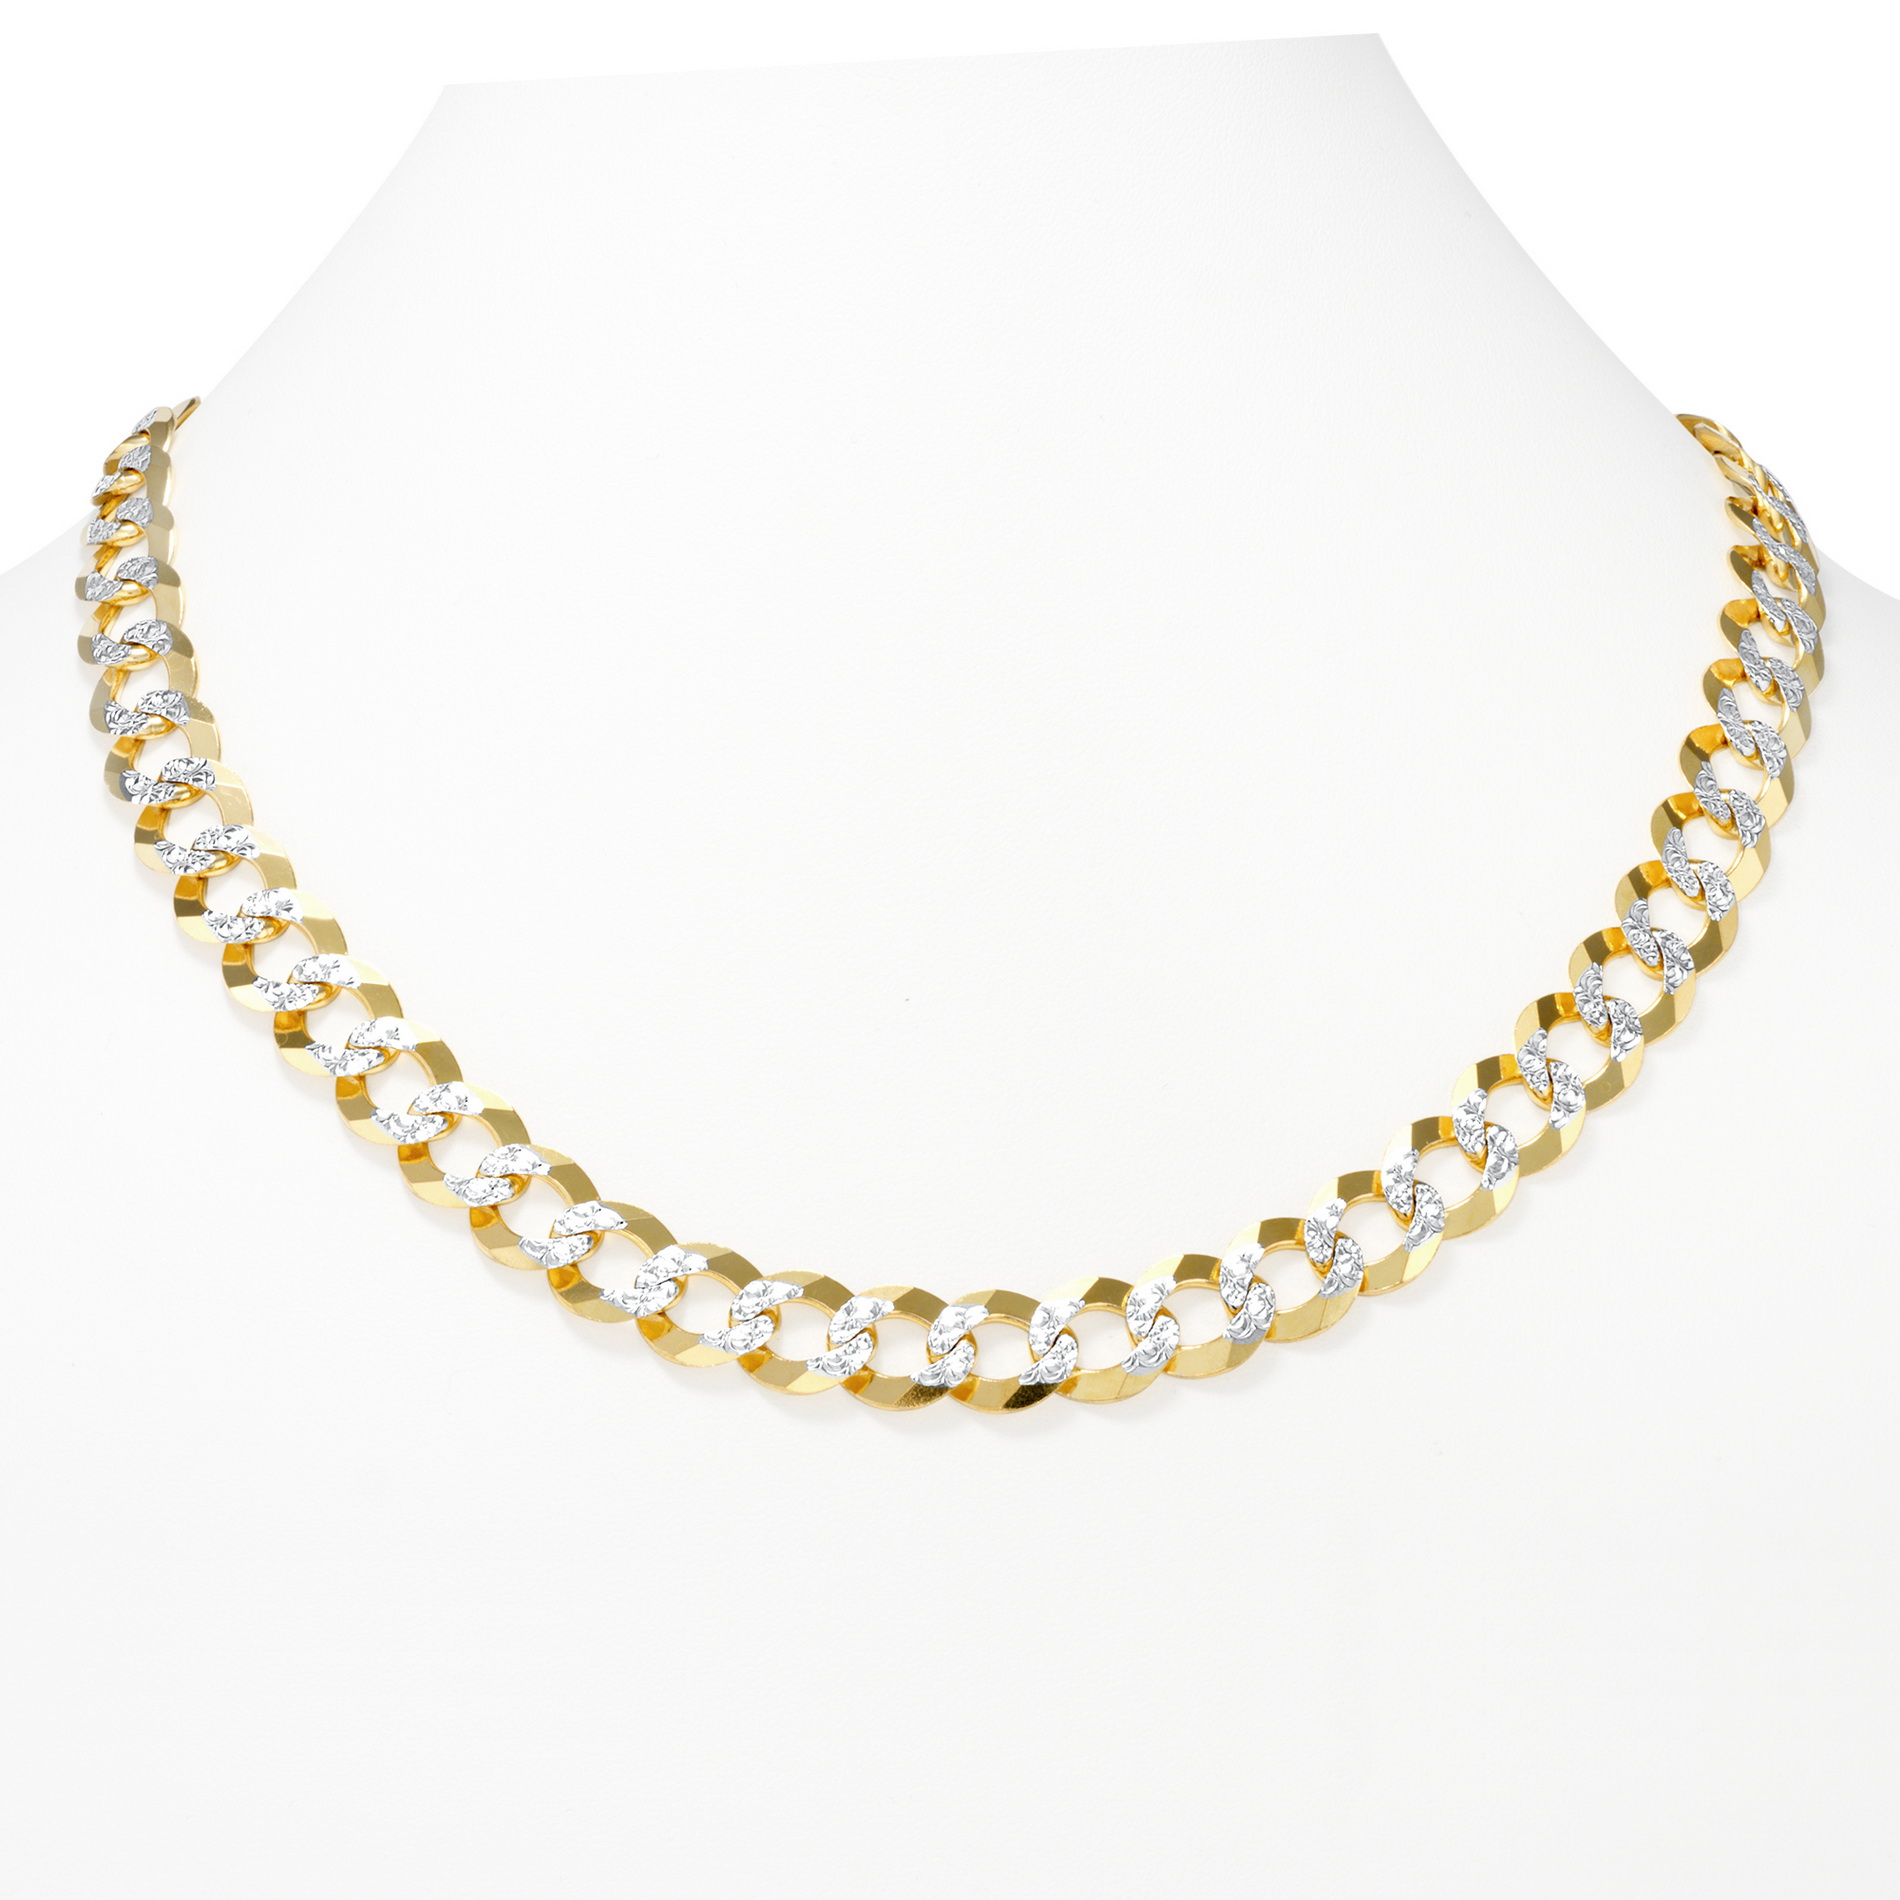 10k-Yellow-Gold-Solid-11-5mm-Diamond-Cut-Pave-Cuban-Curb-Chain-Necklace-22-034-30-034 thumbnail 17